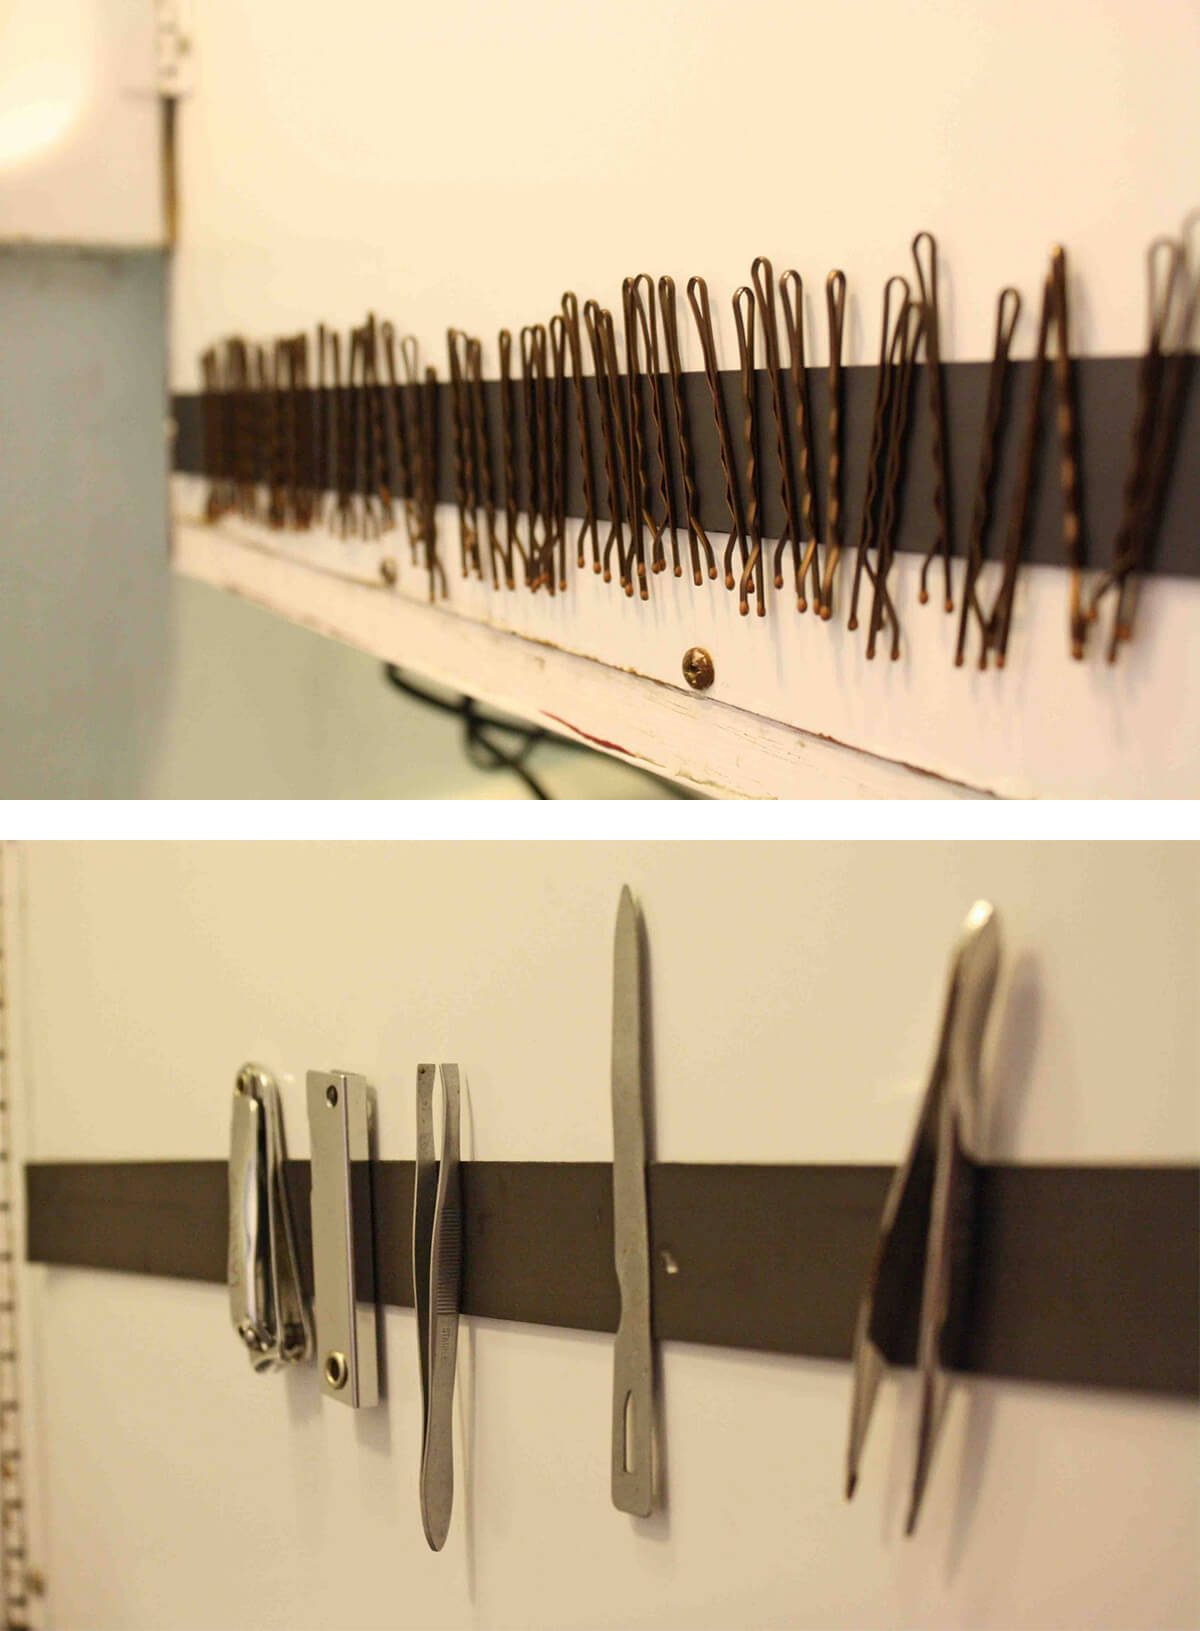 Magnetic Strip Organizers for Tiny Bathroom Essentials